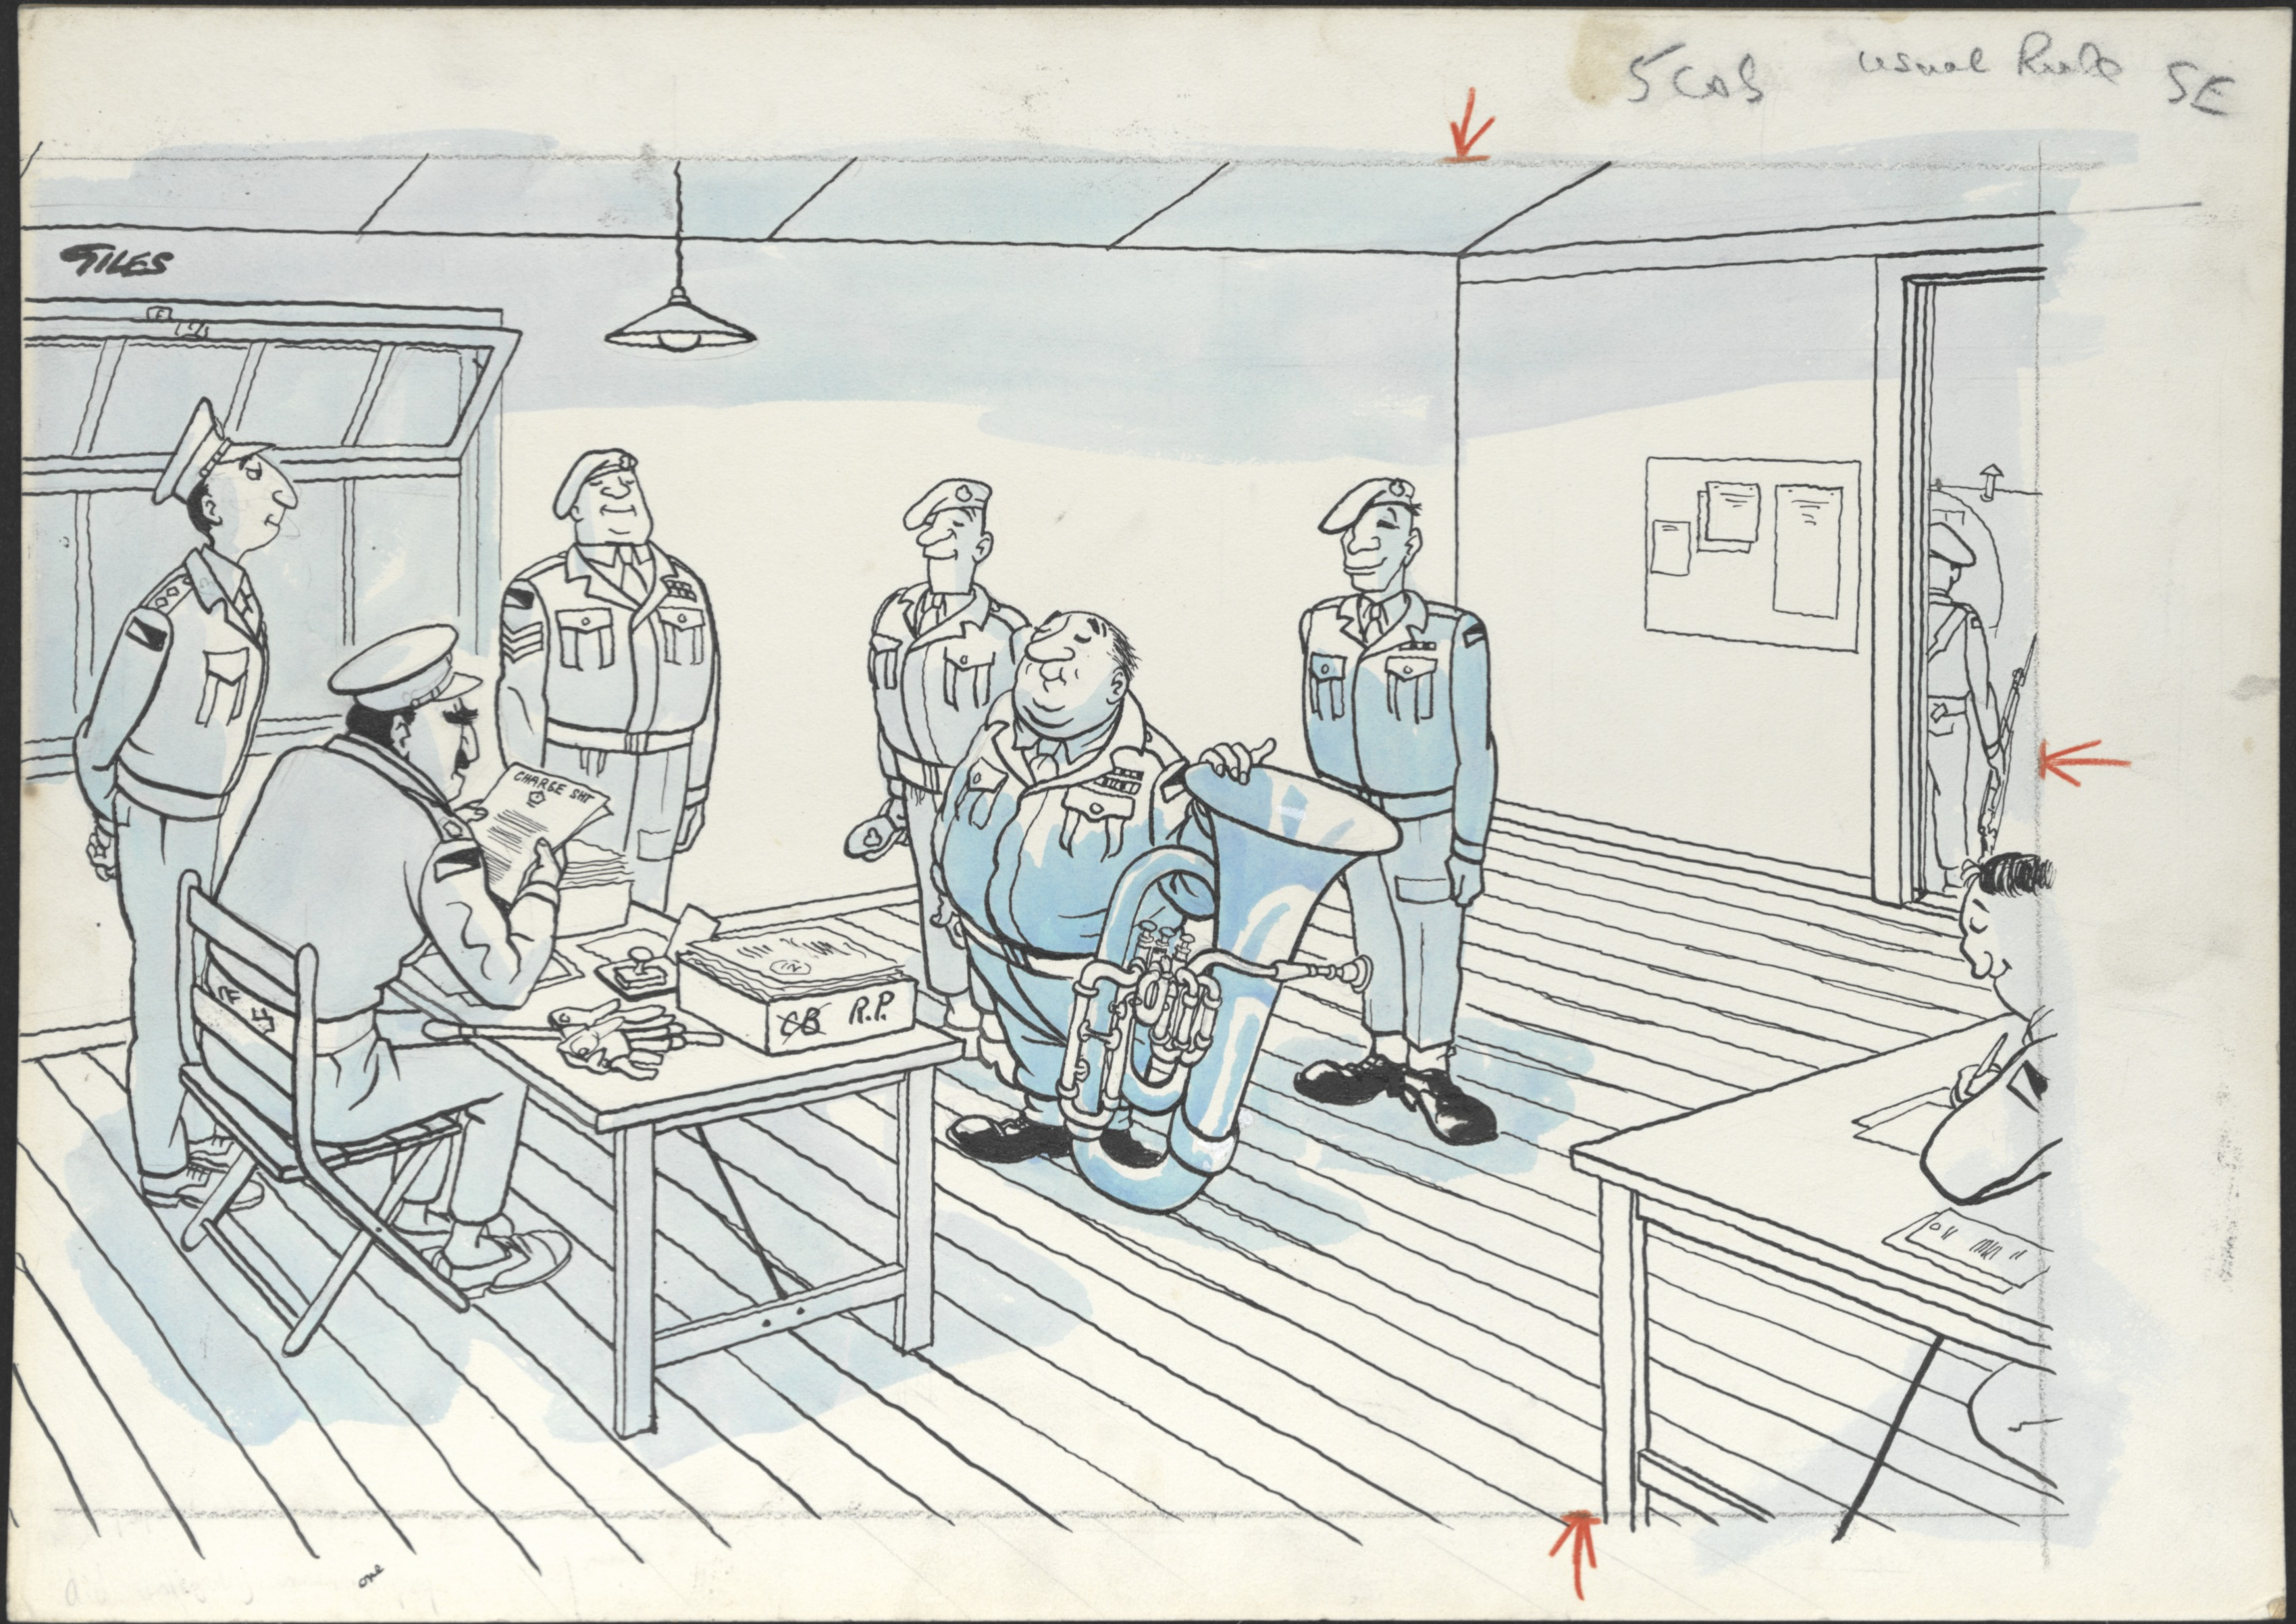 Cartoon by Carl Giles showing a group of soldiers being told off for inserting a mischievous page of music into the official performance